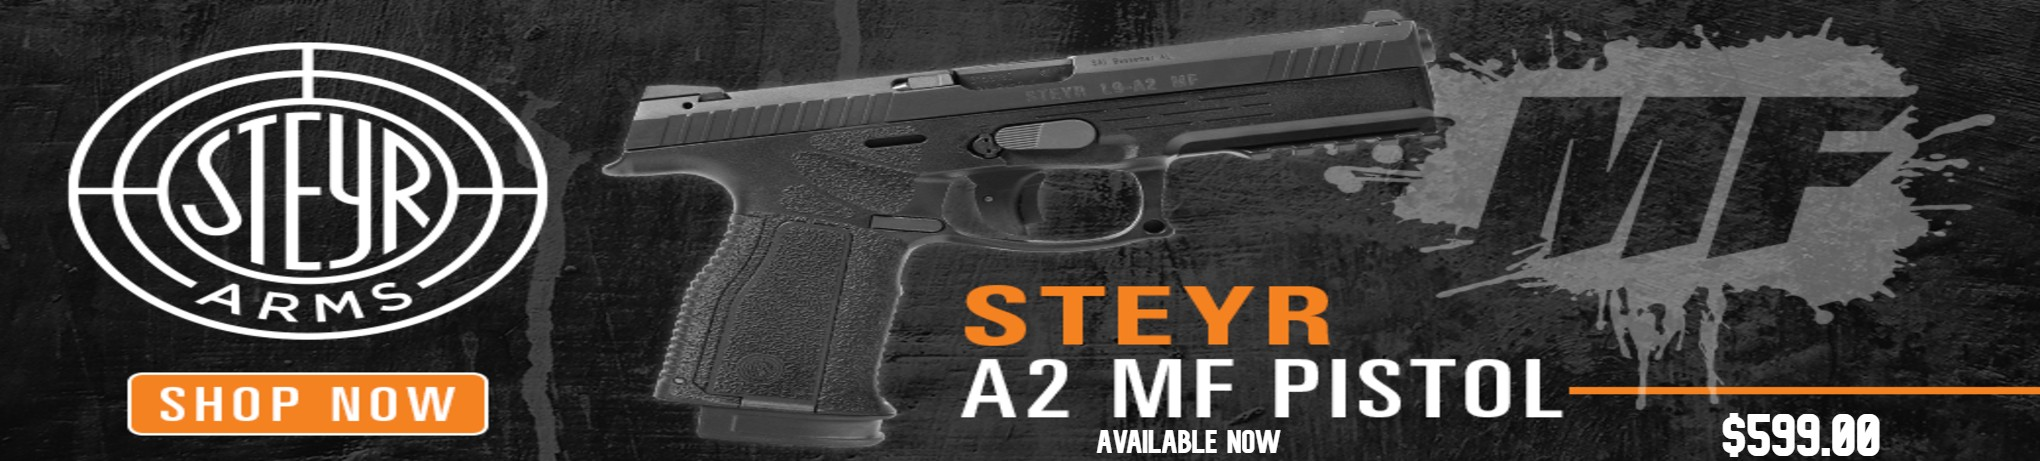 https://shop.vtservicesgroup.com/products/handguns-steyr-68821911-78-121-2h0-2802